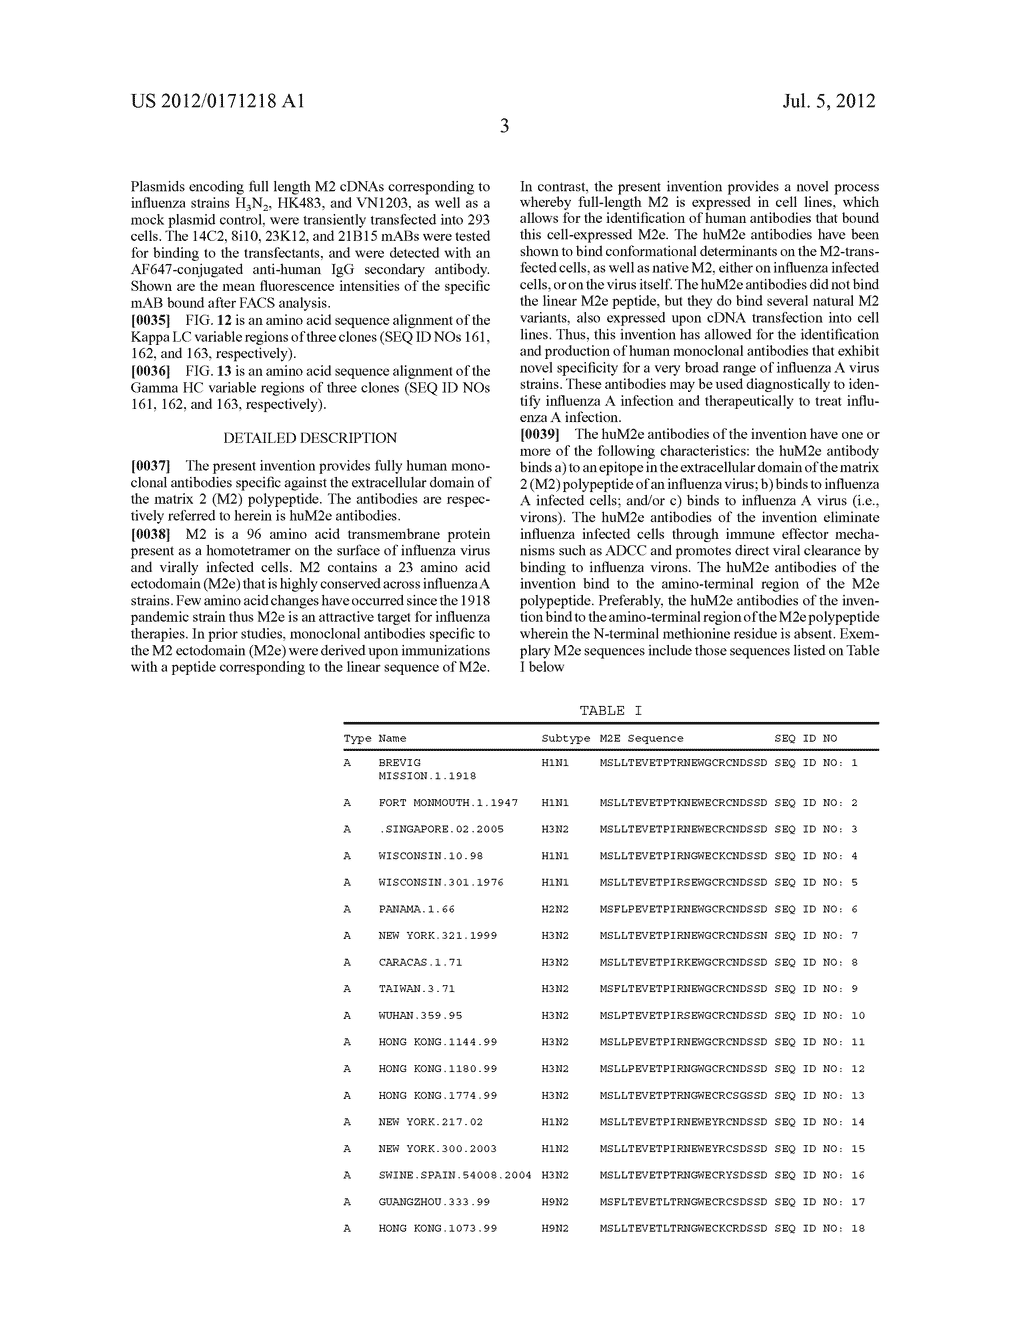 Compositions And Methods For The Therapy And Diagnosis Of Influenza - diagram, schematic, and image 23